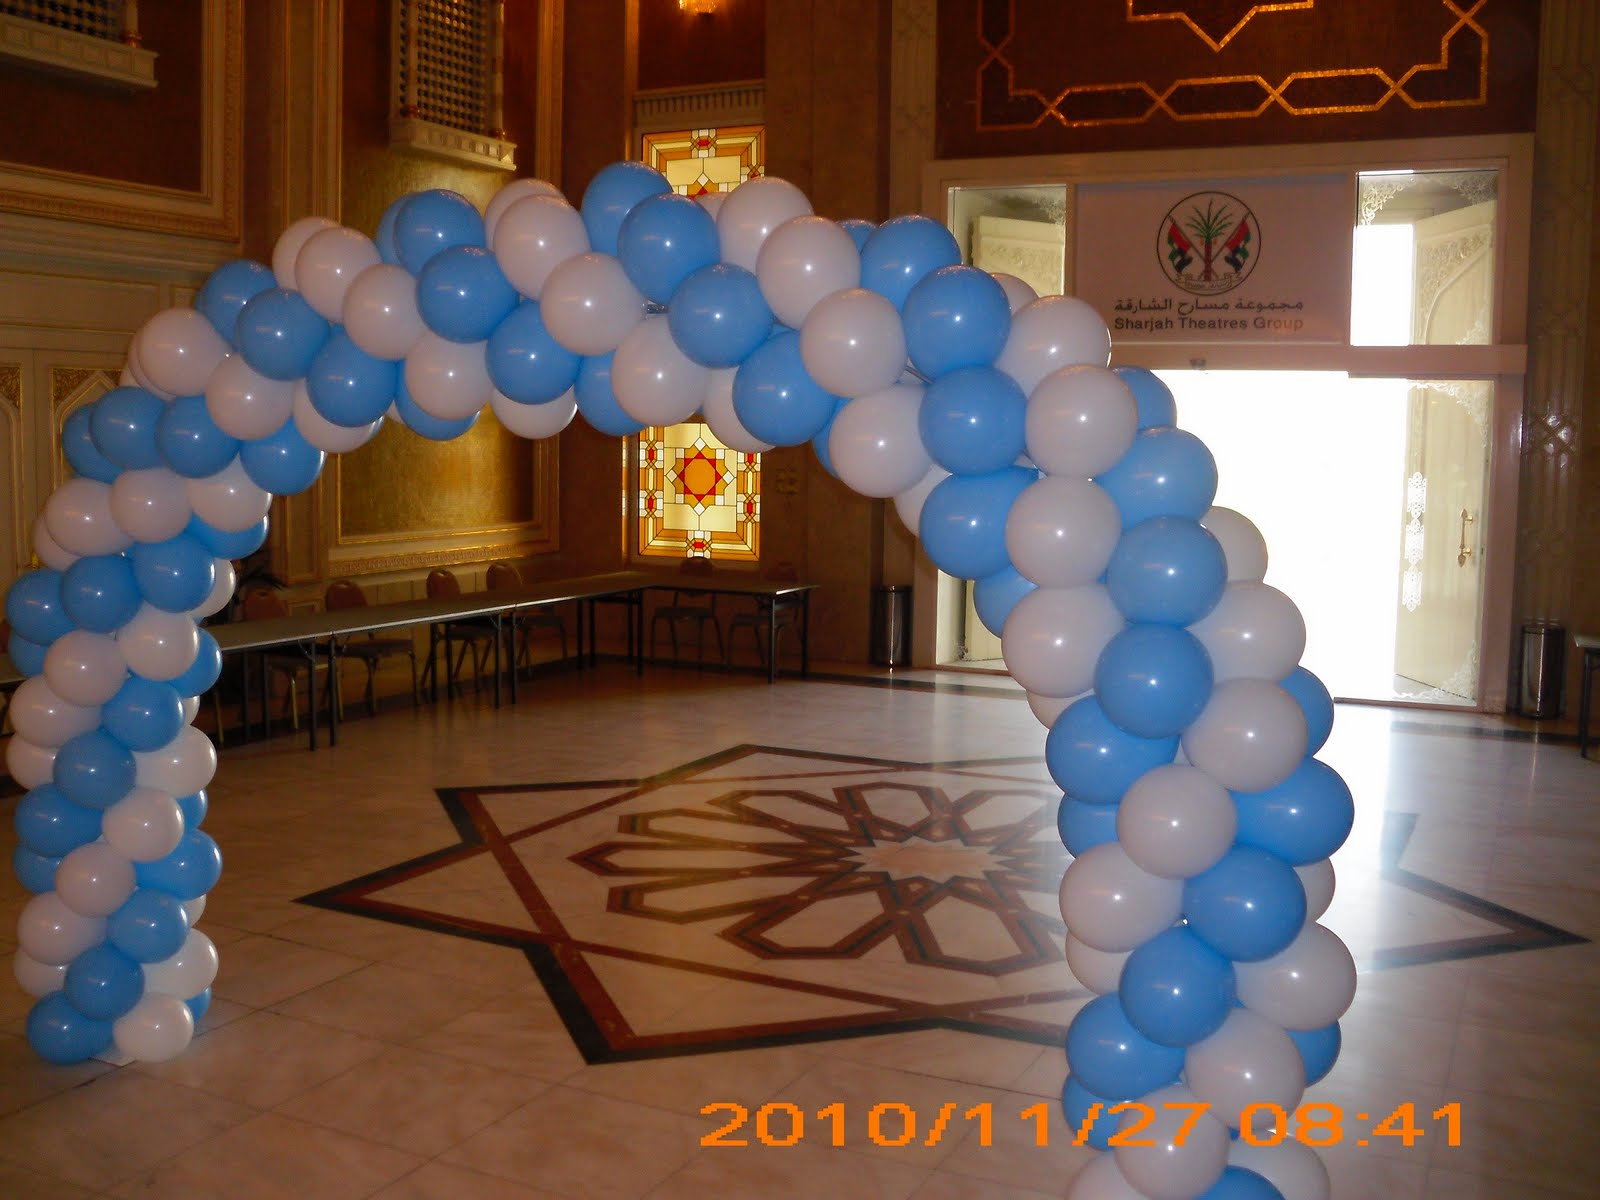 Brilliant Balloon Wedding Centerpiece Ideas 1600 x 1200 · 166 kB · jpeg